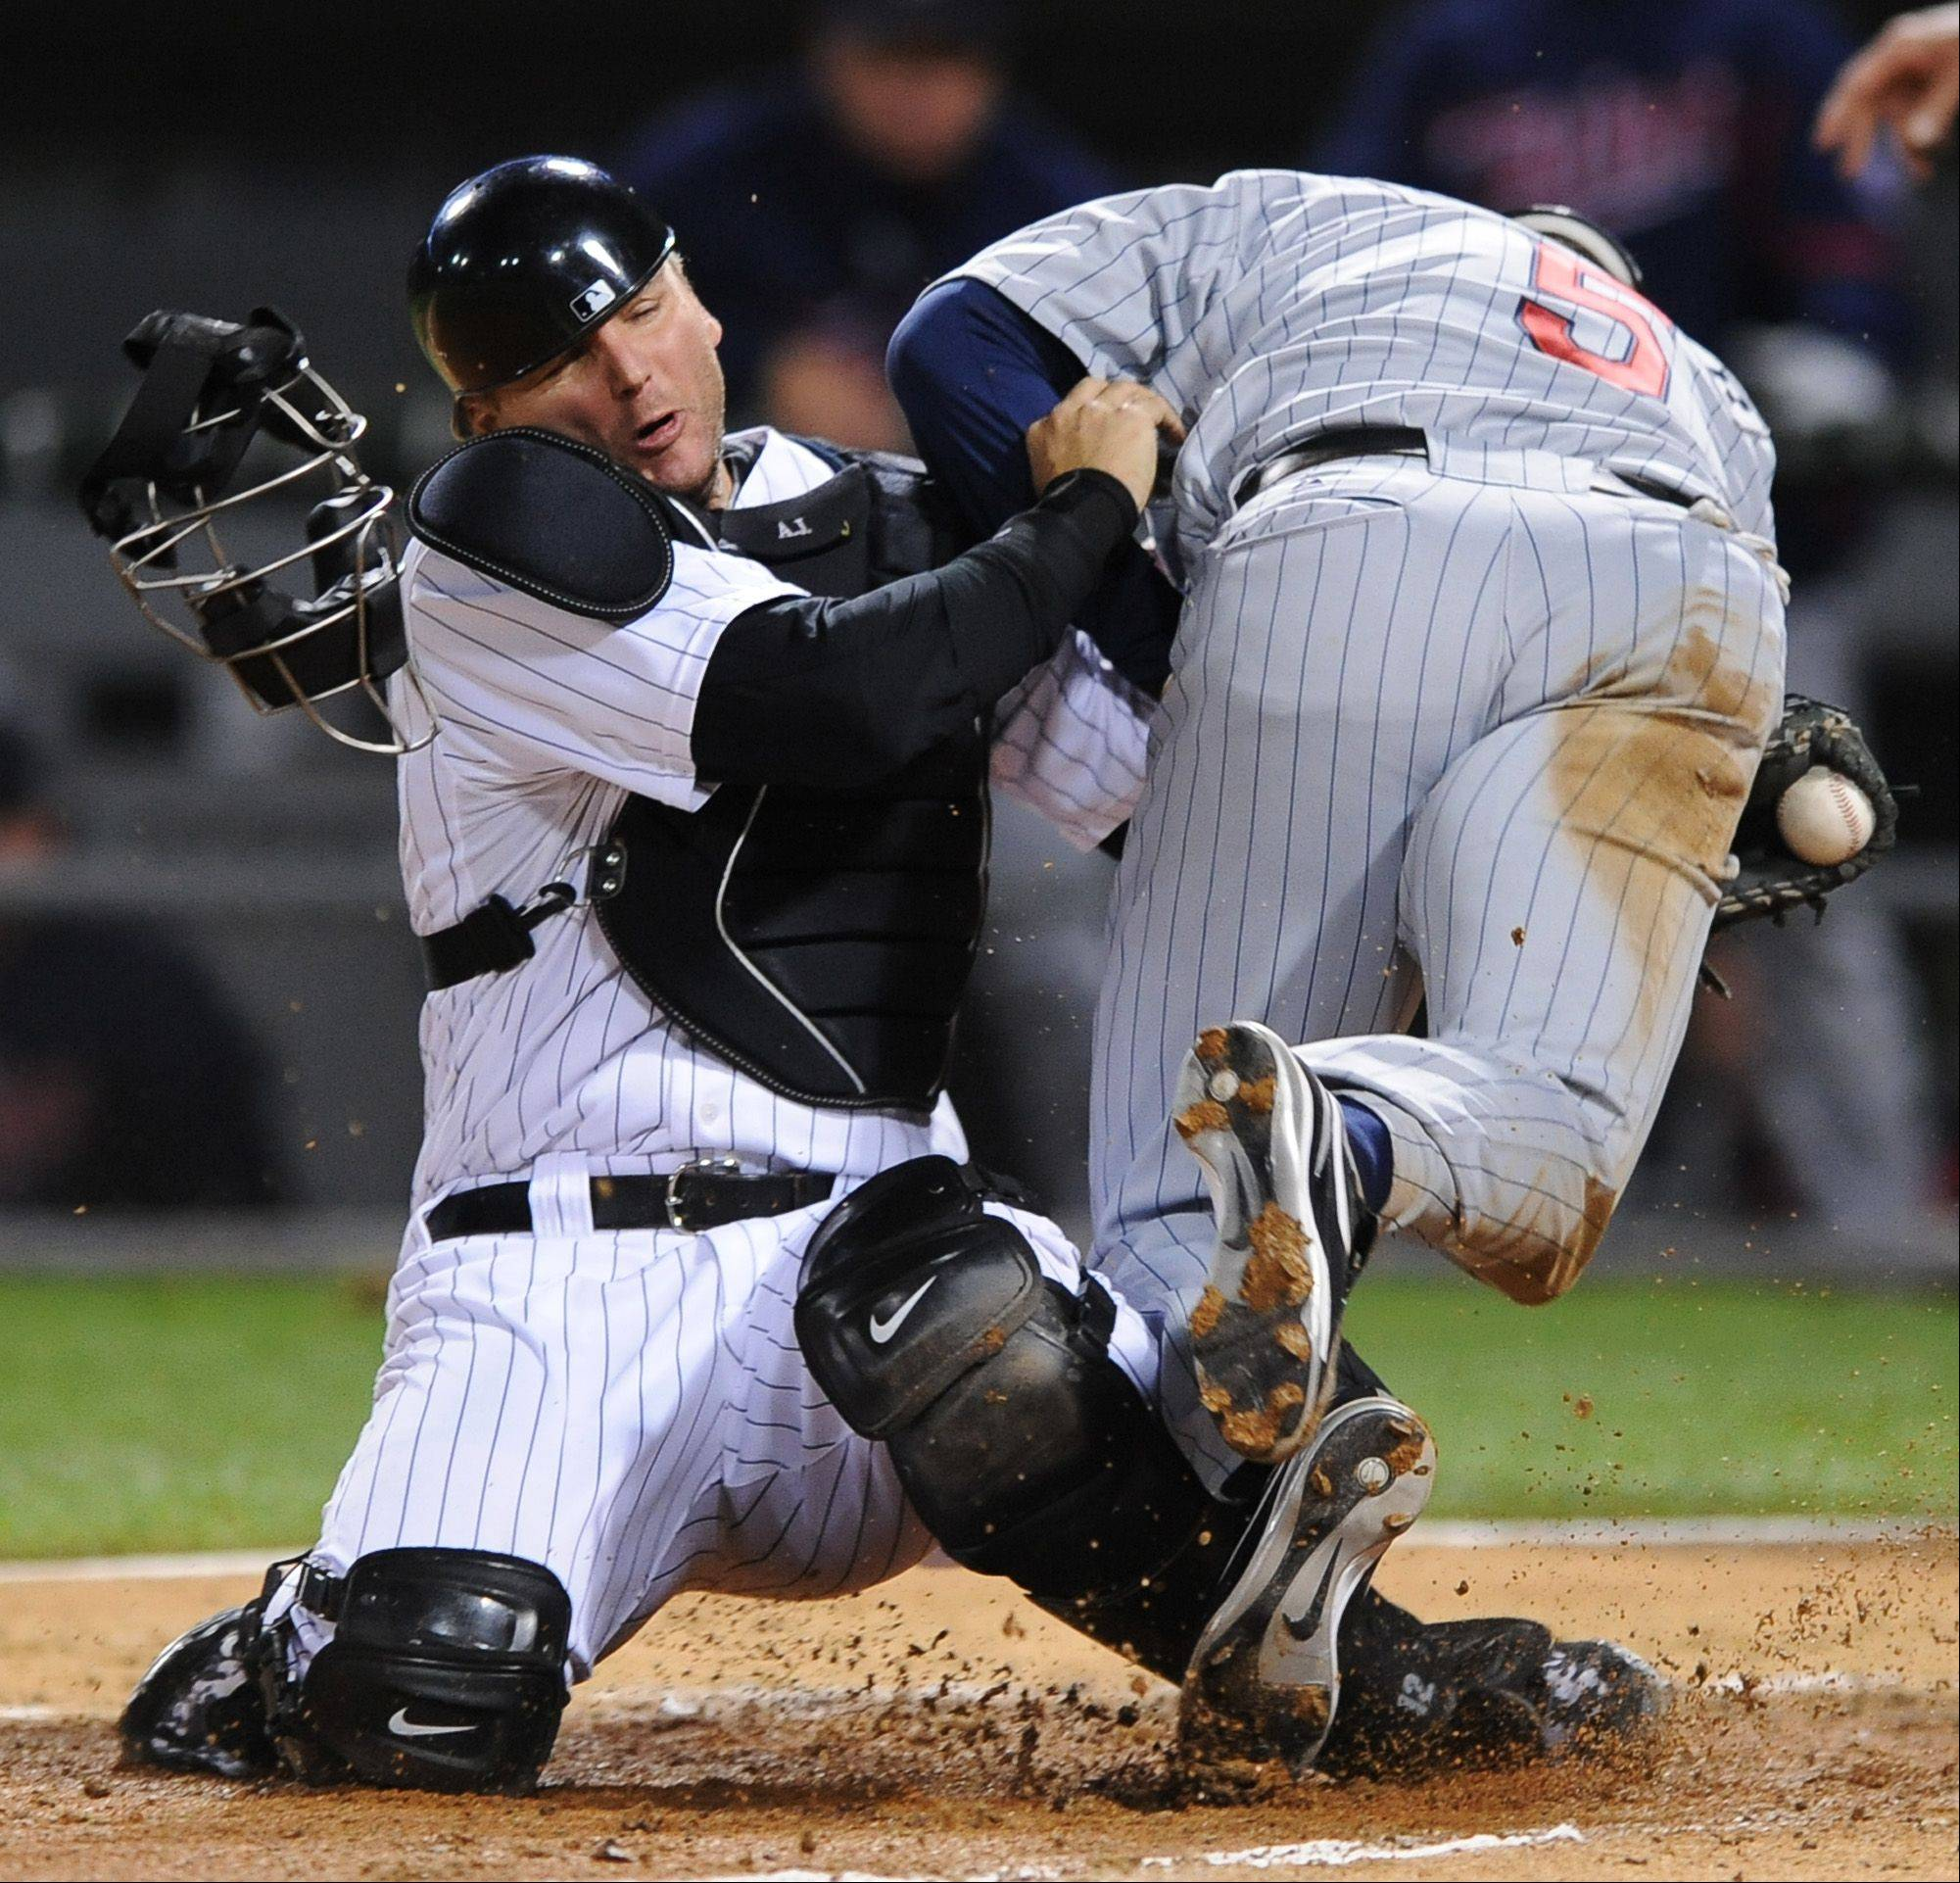 Chicago White Sox catcher A.J. Pierzynski, left, tags out Minnesota Twins' Michael Cuddyer at home during the American League Central Division tiebreaker baseball game in 2008